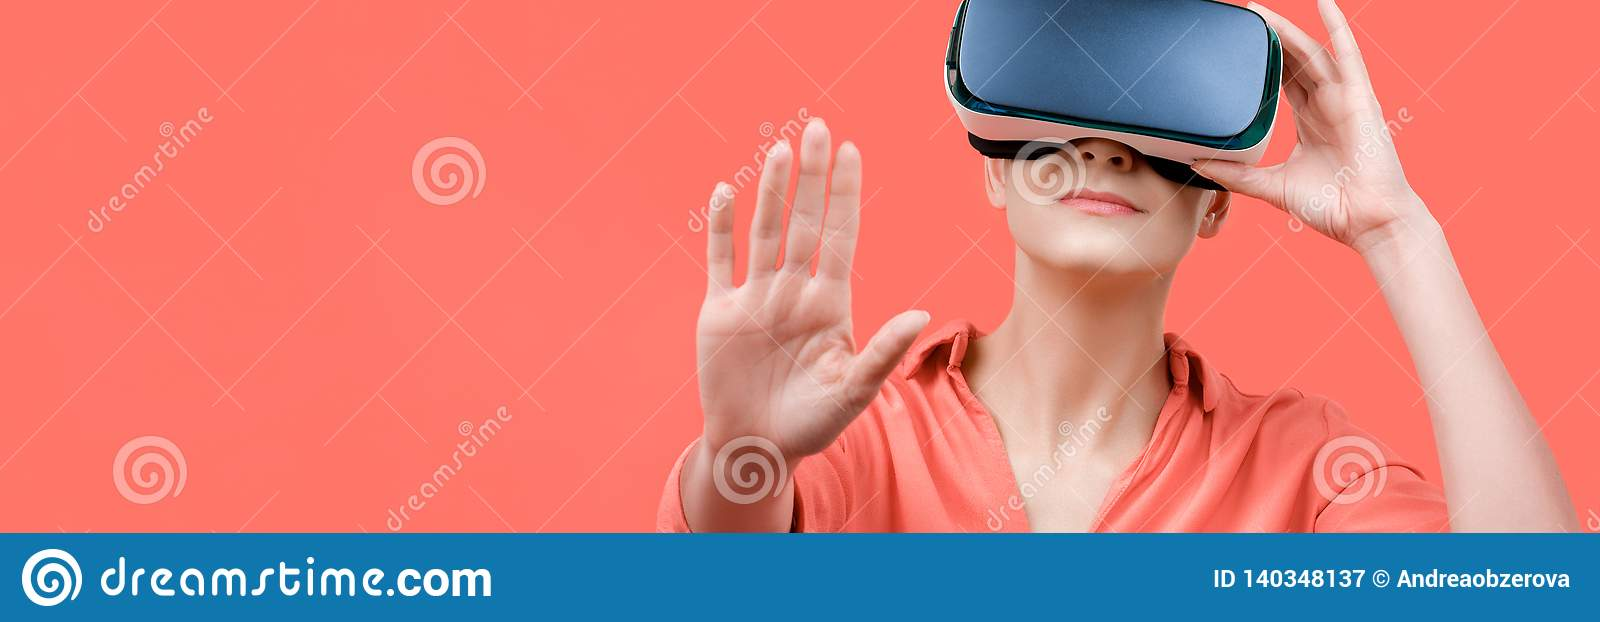 Young woman wearing virtual reality goggles. Woman wearing VR glasses over coral background. VR experience banner.